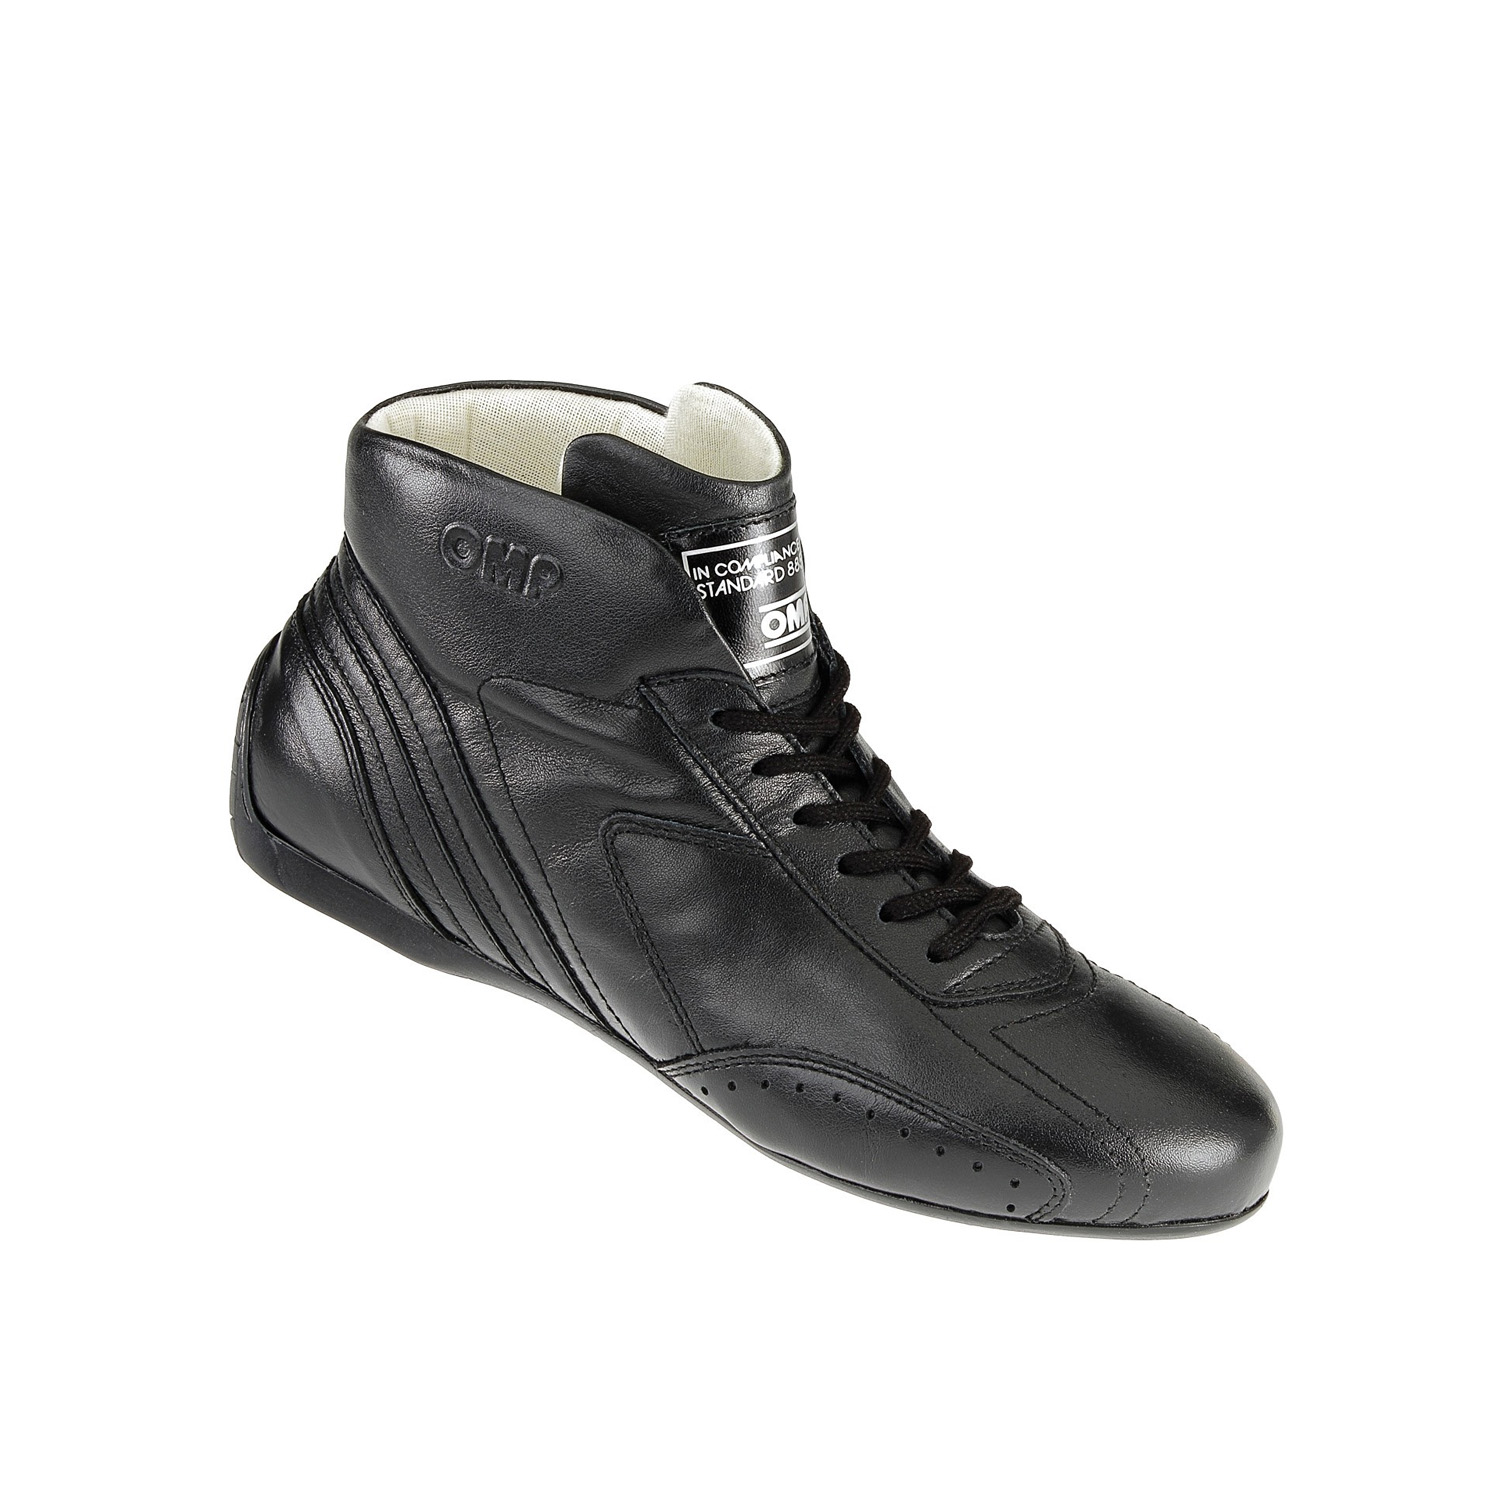 about ShoesFIA428 US Racing Details 5 OMP CARRERA Black New low UK8 zMpLUVqSG